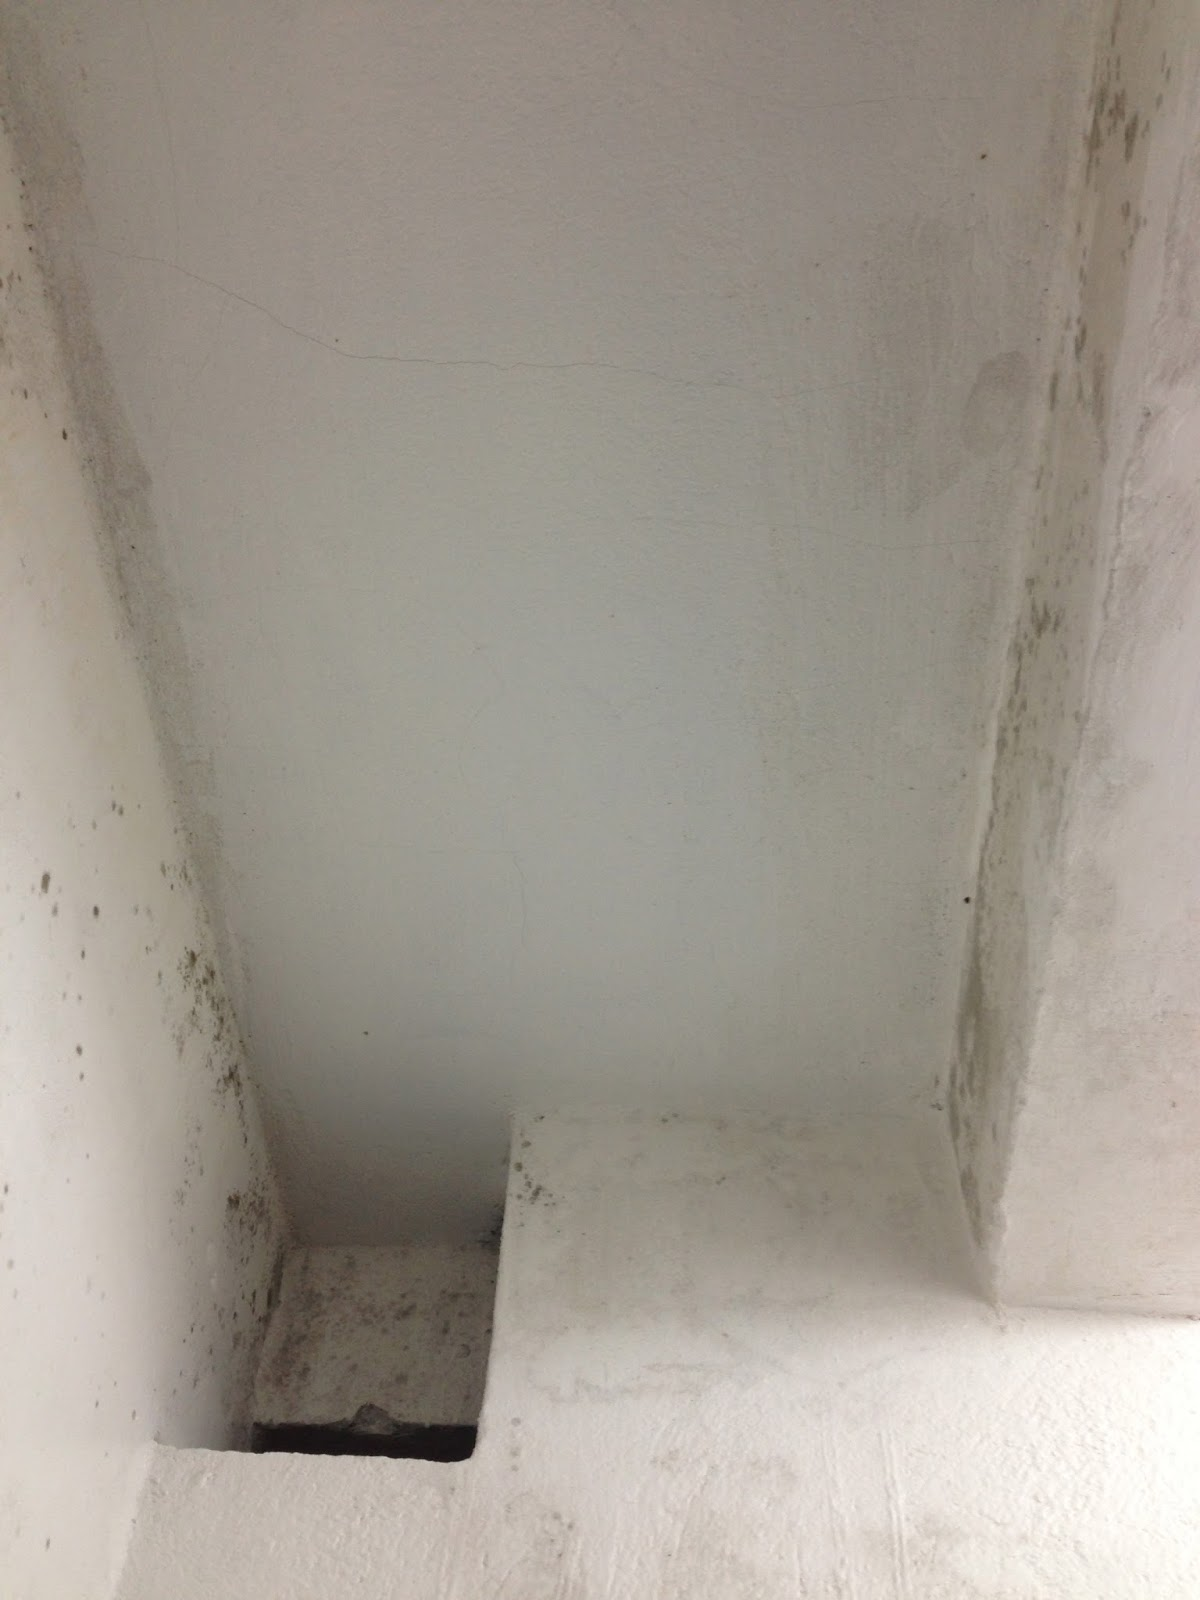 Mold on the ceilings